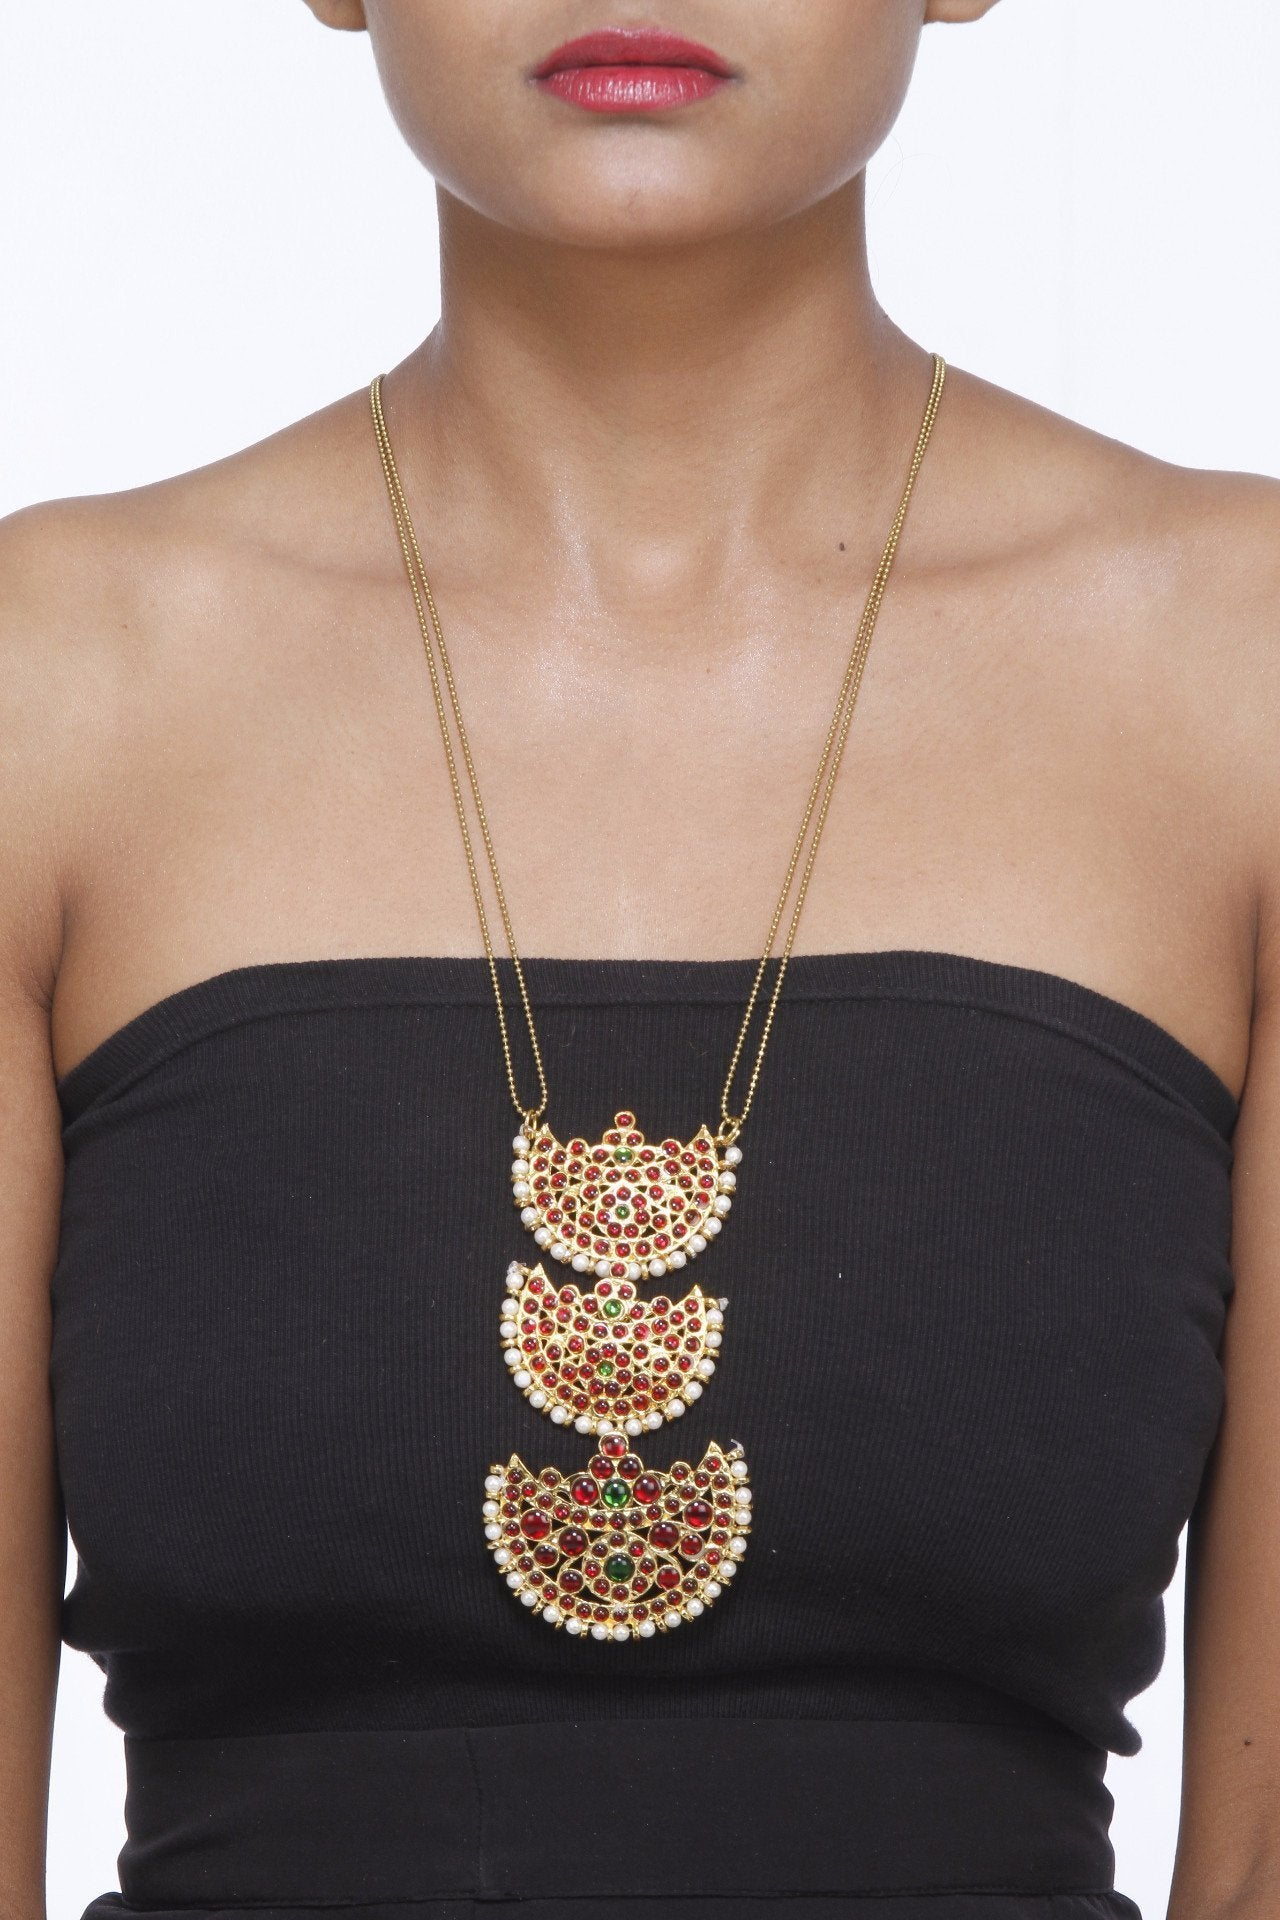 Moon Shaped Motifs In A Gold Chain